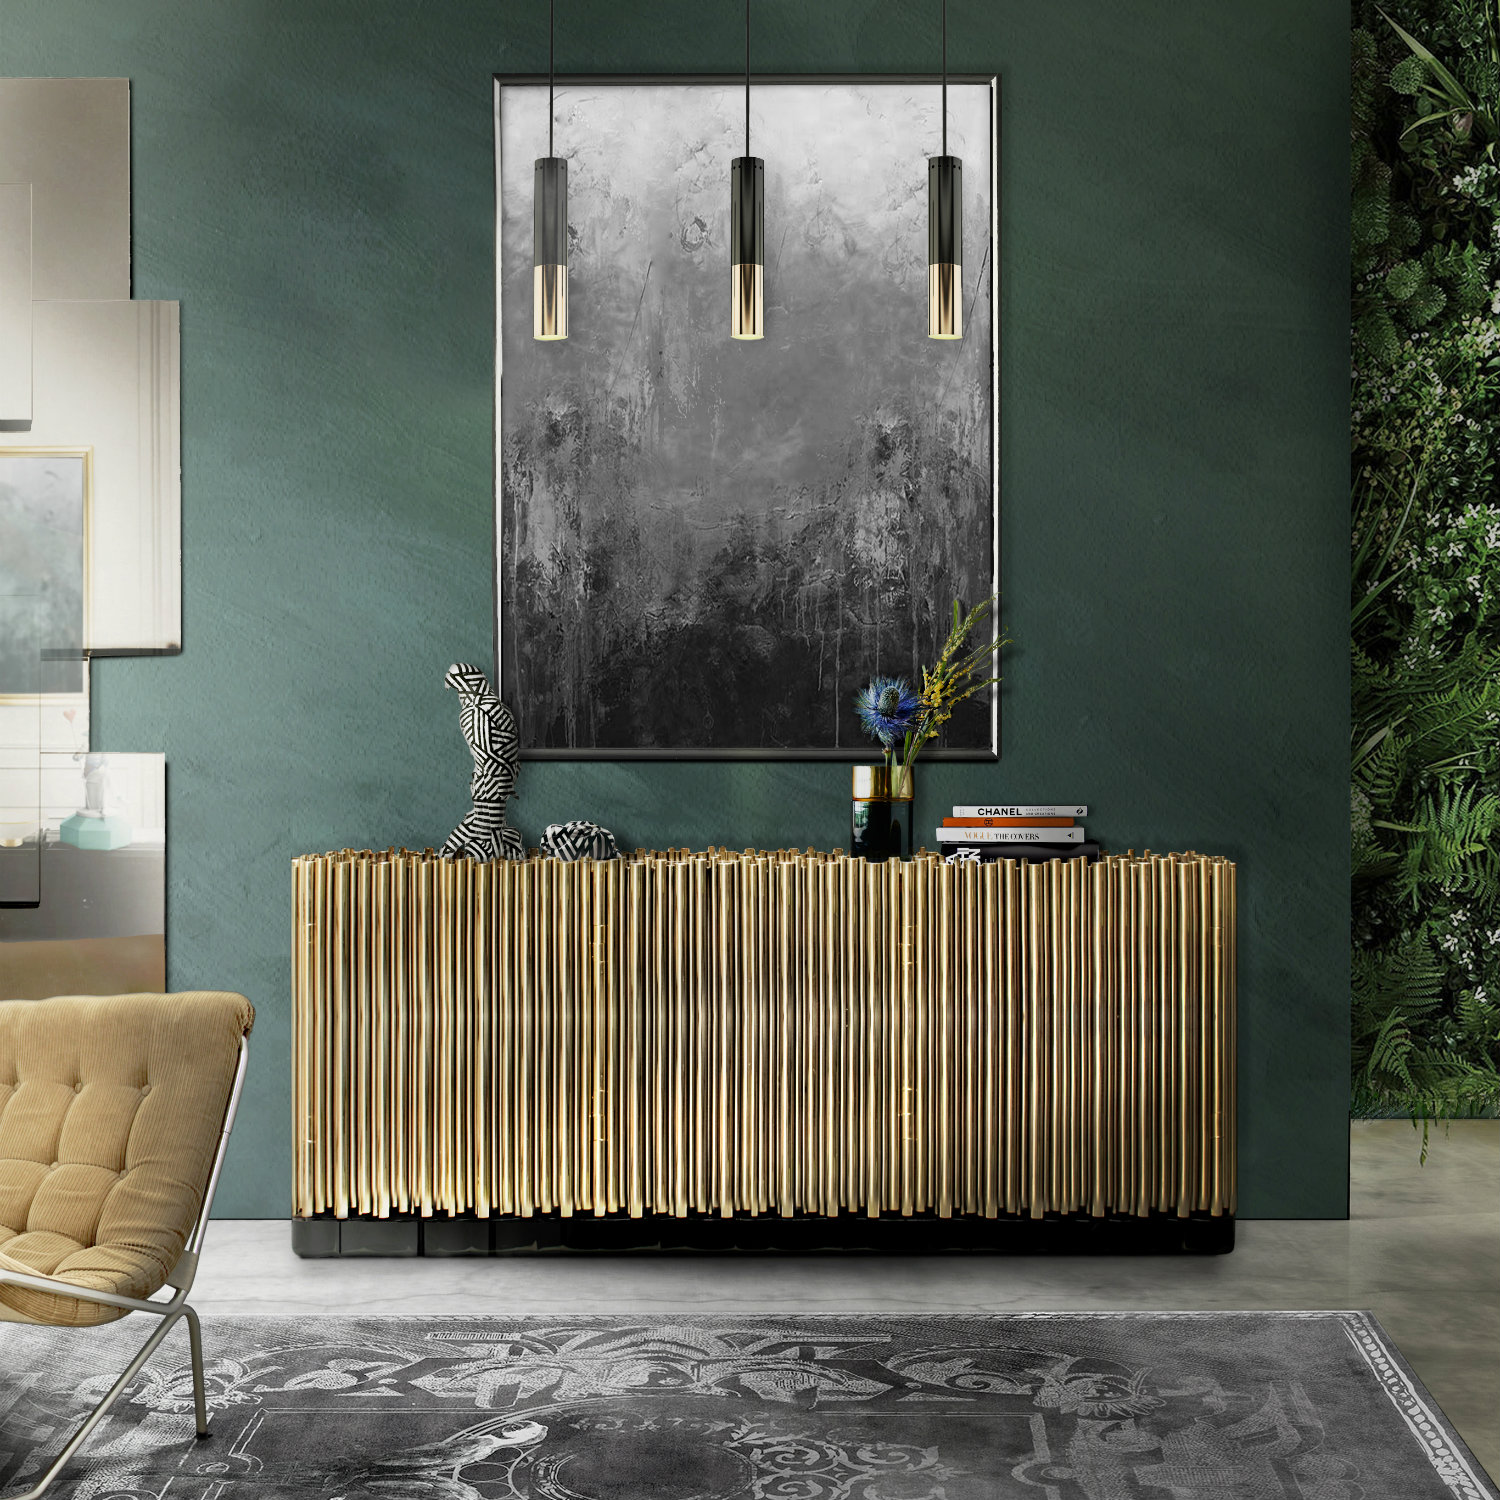 design china beijing Design China Beijing: Top 5 Exhibitors symphony sideboard